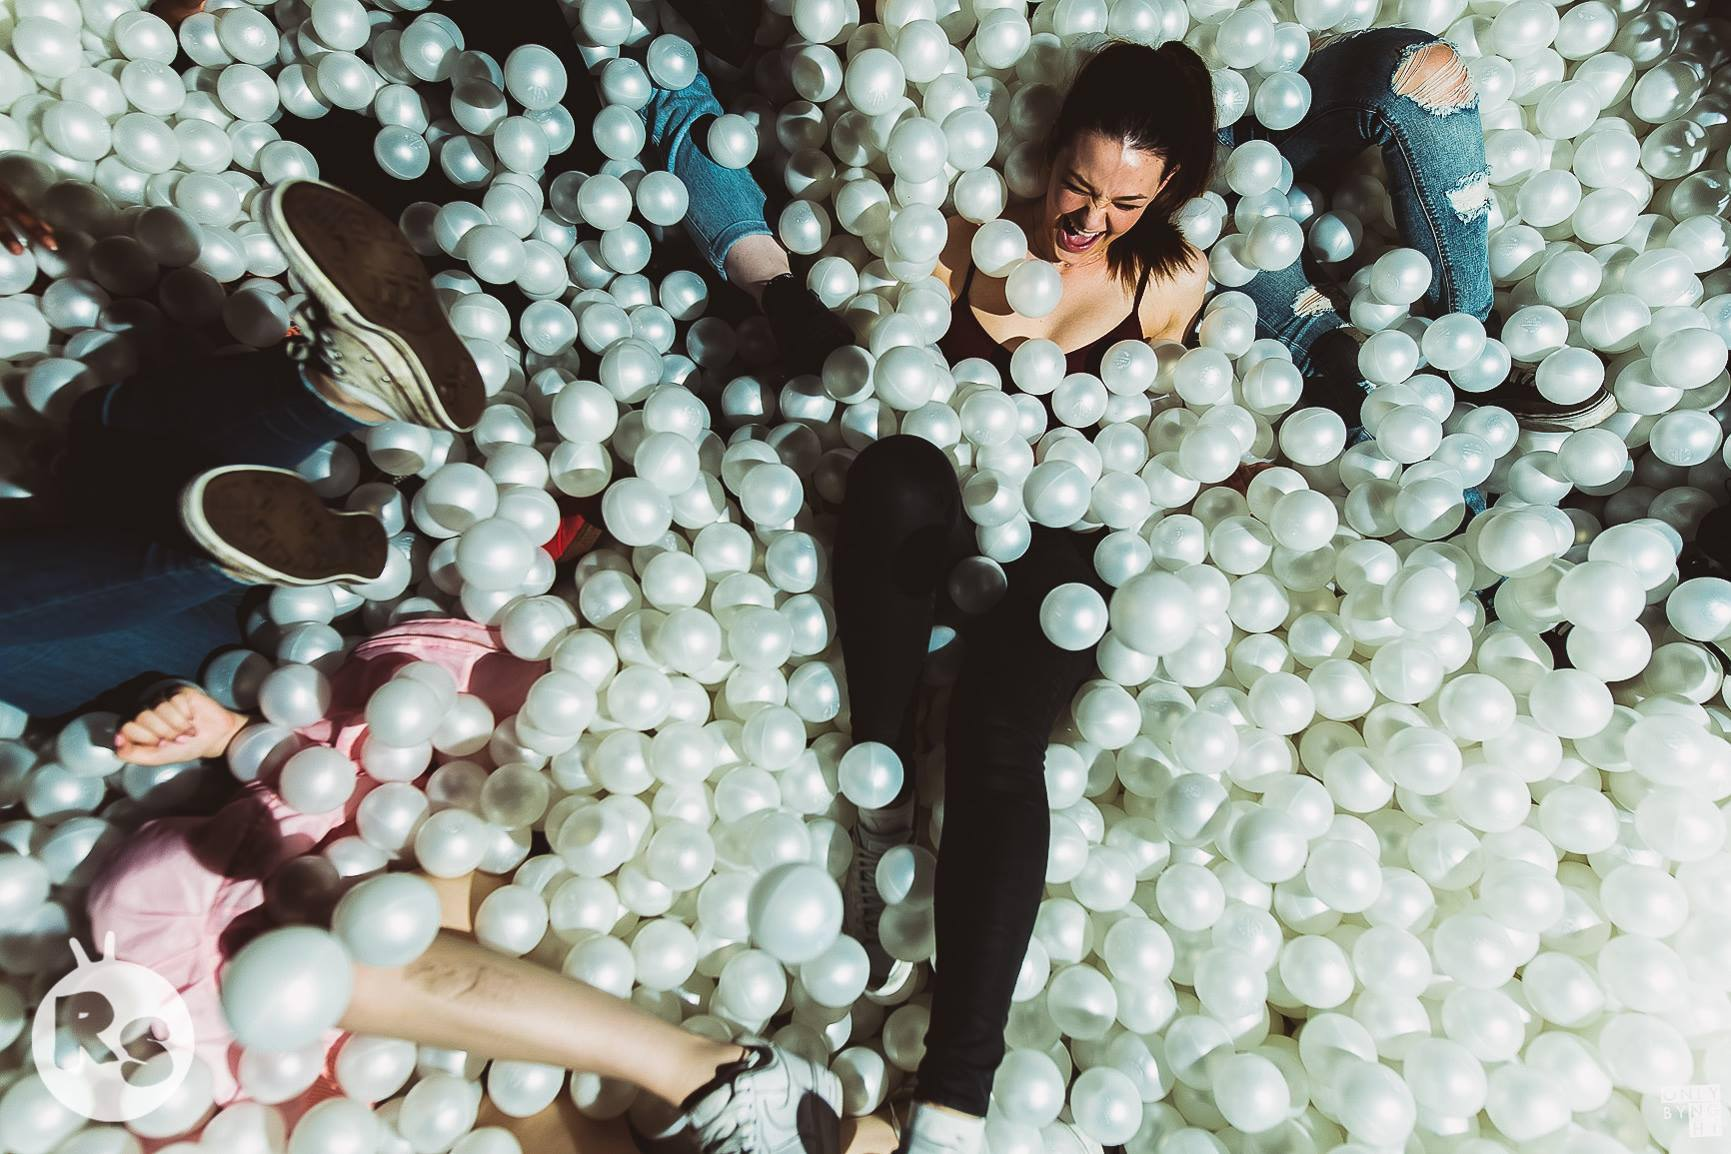 Digital Newcastle image of people sat in a ball pool